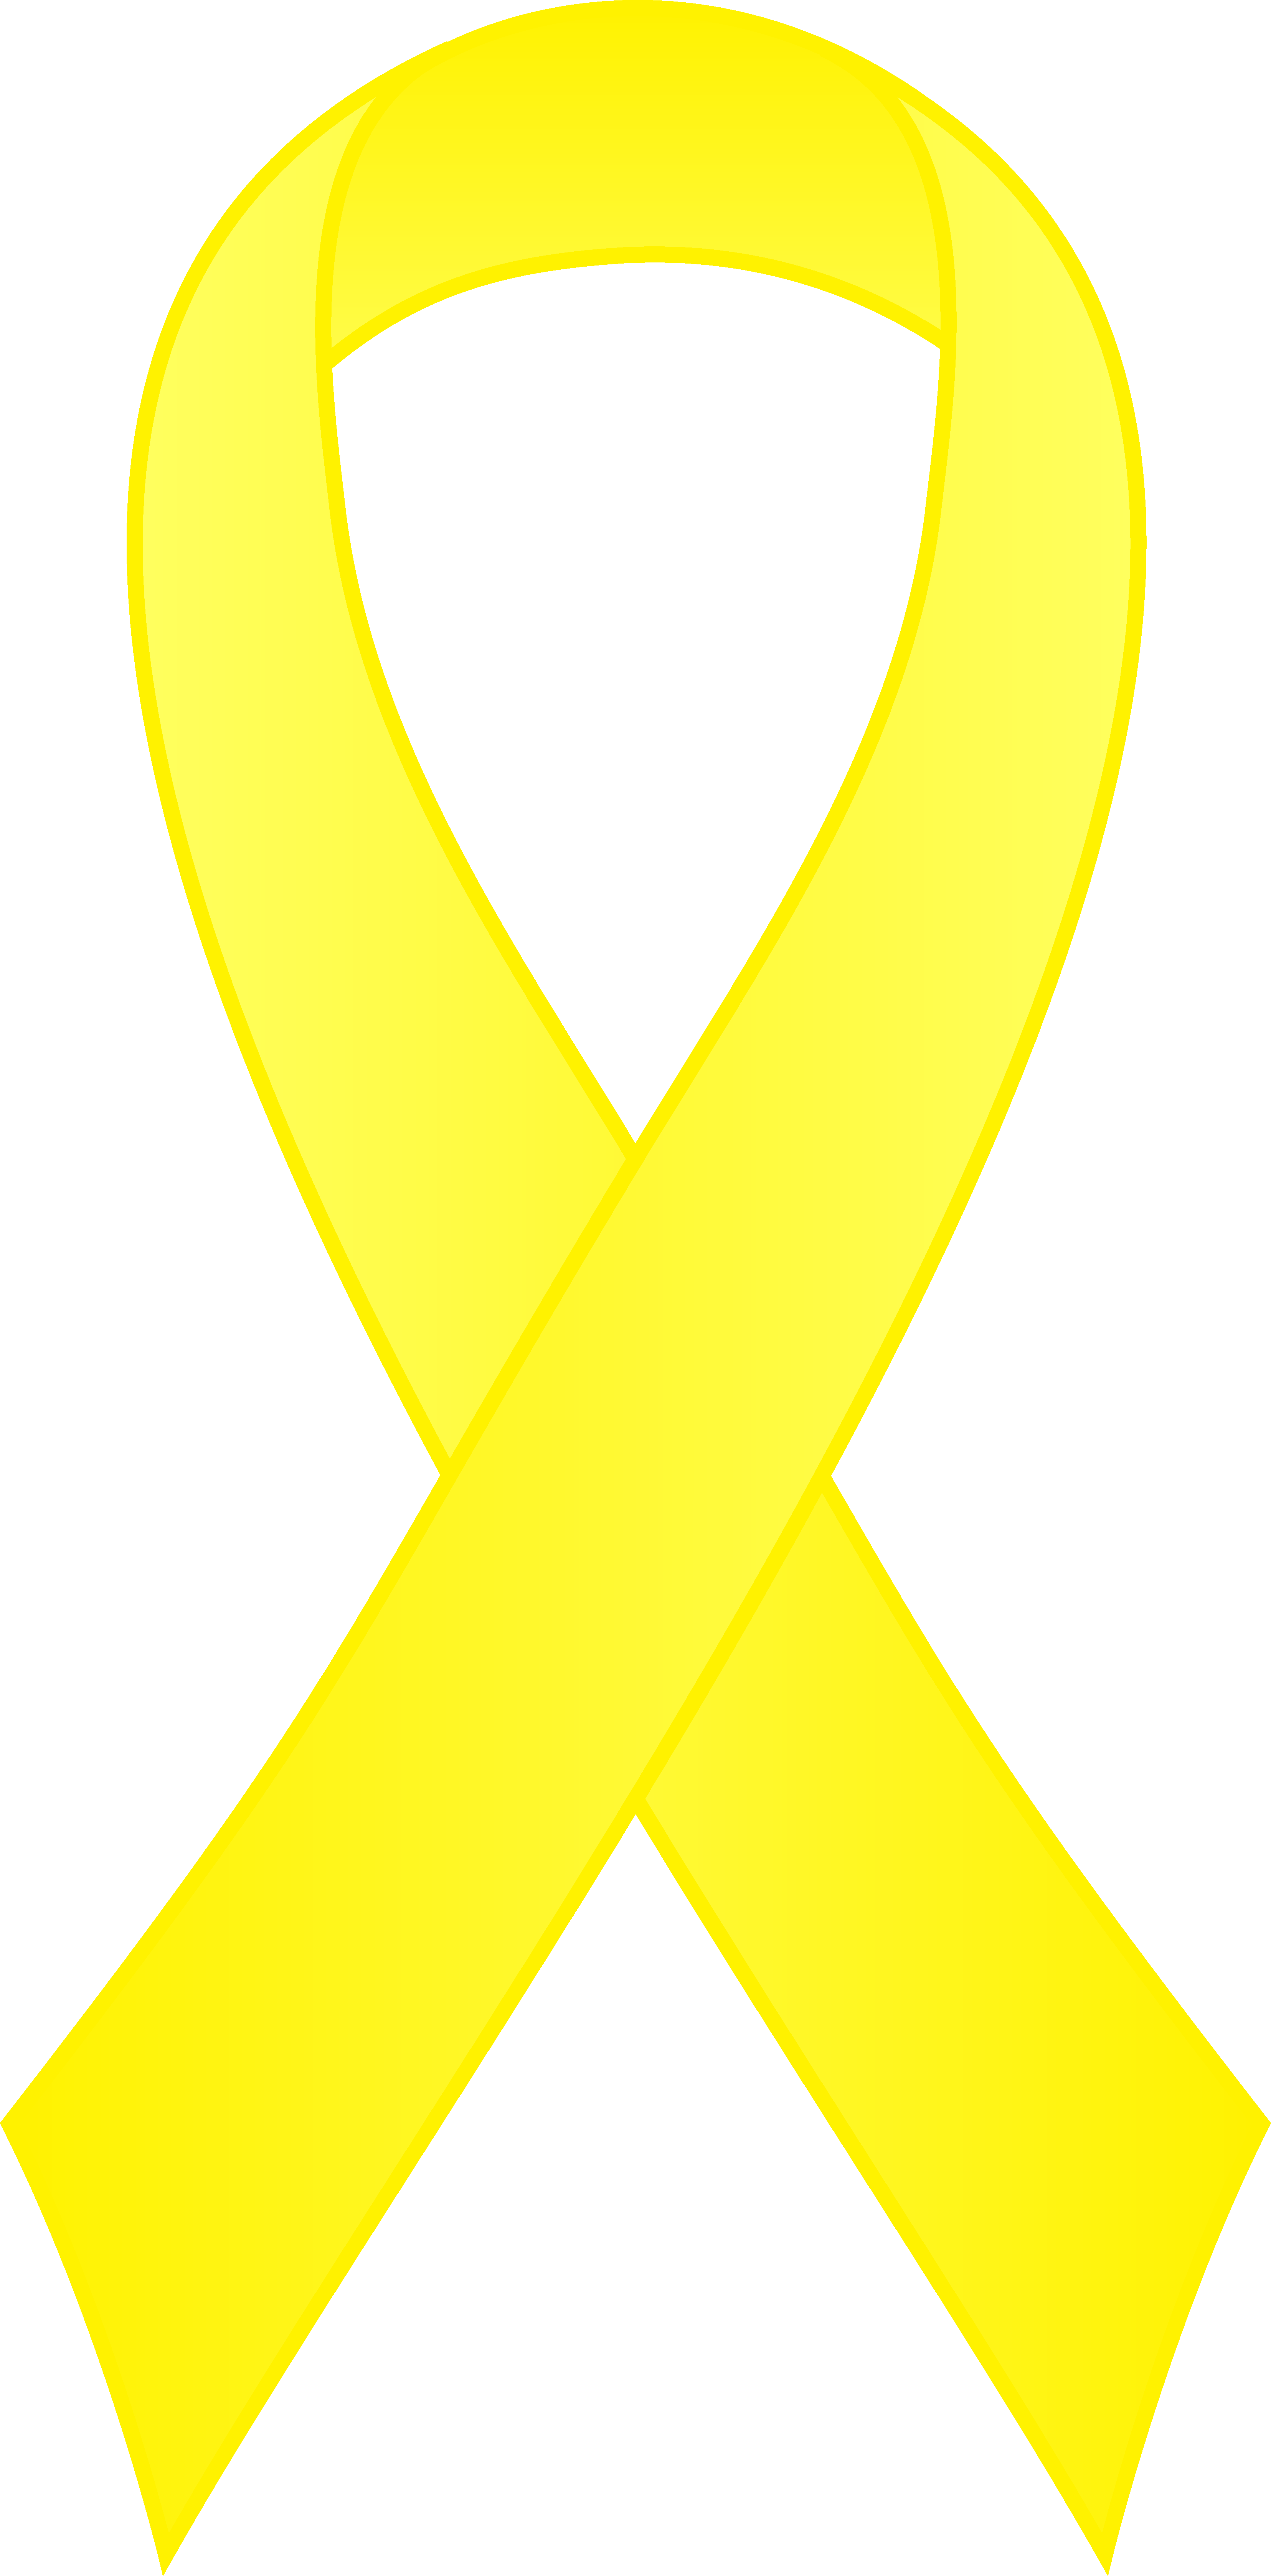 Support drawing yellow ribbon. Collection of clipart